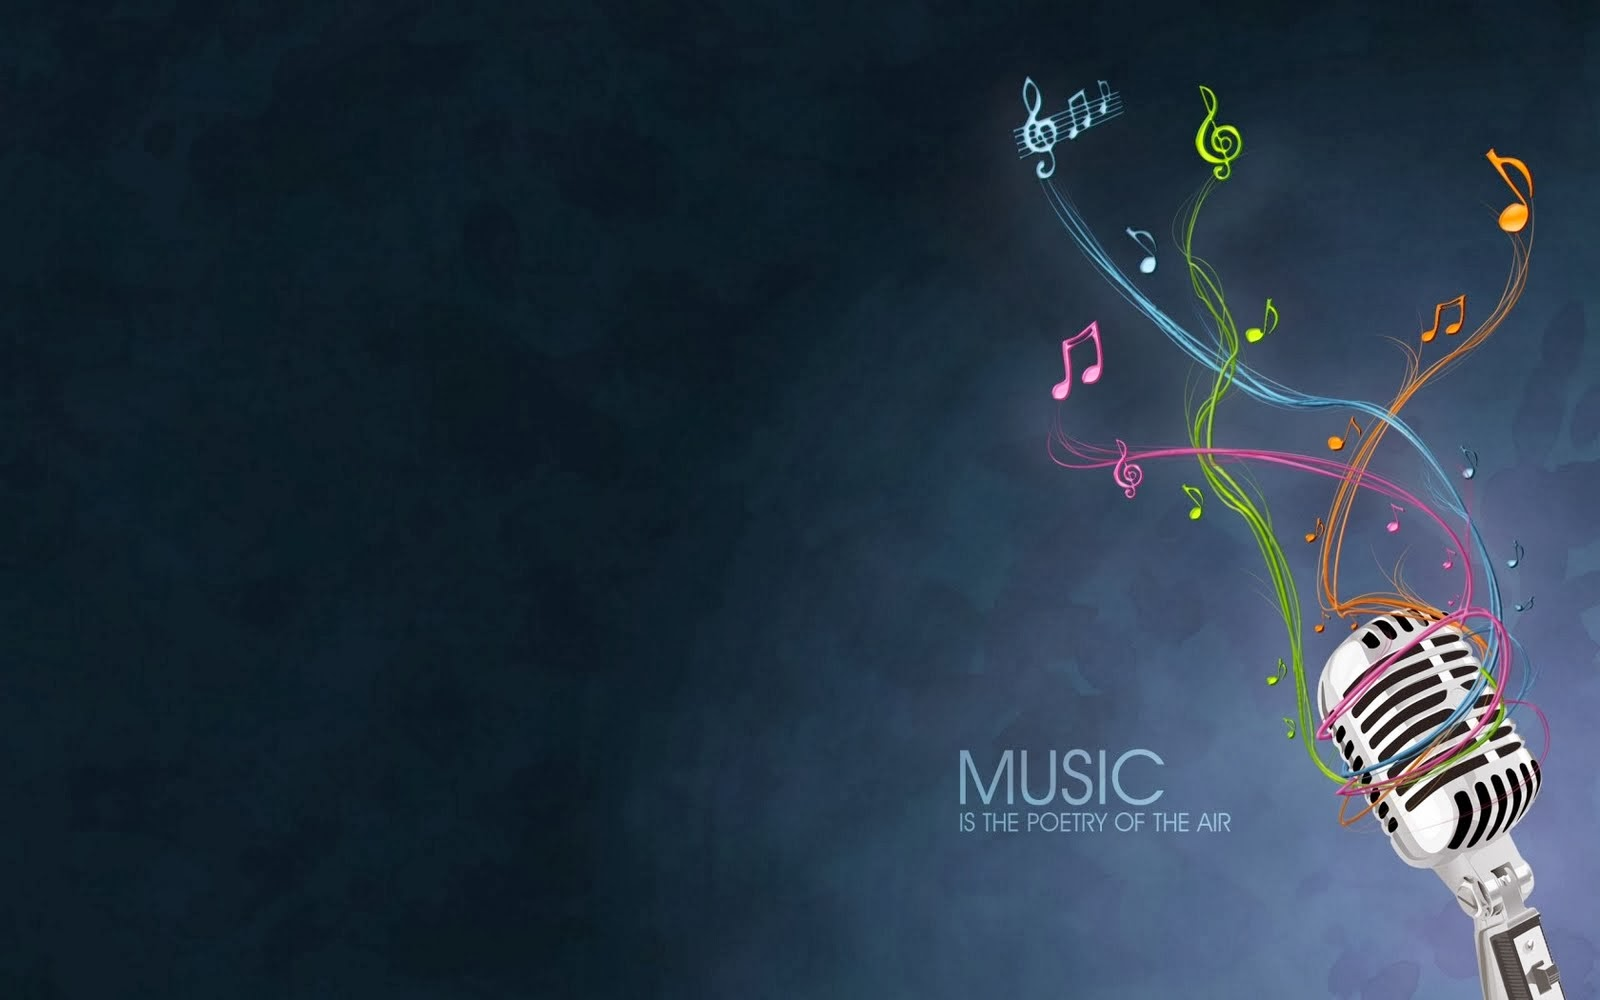 CG & BG: Music Background images Abstract